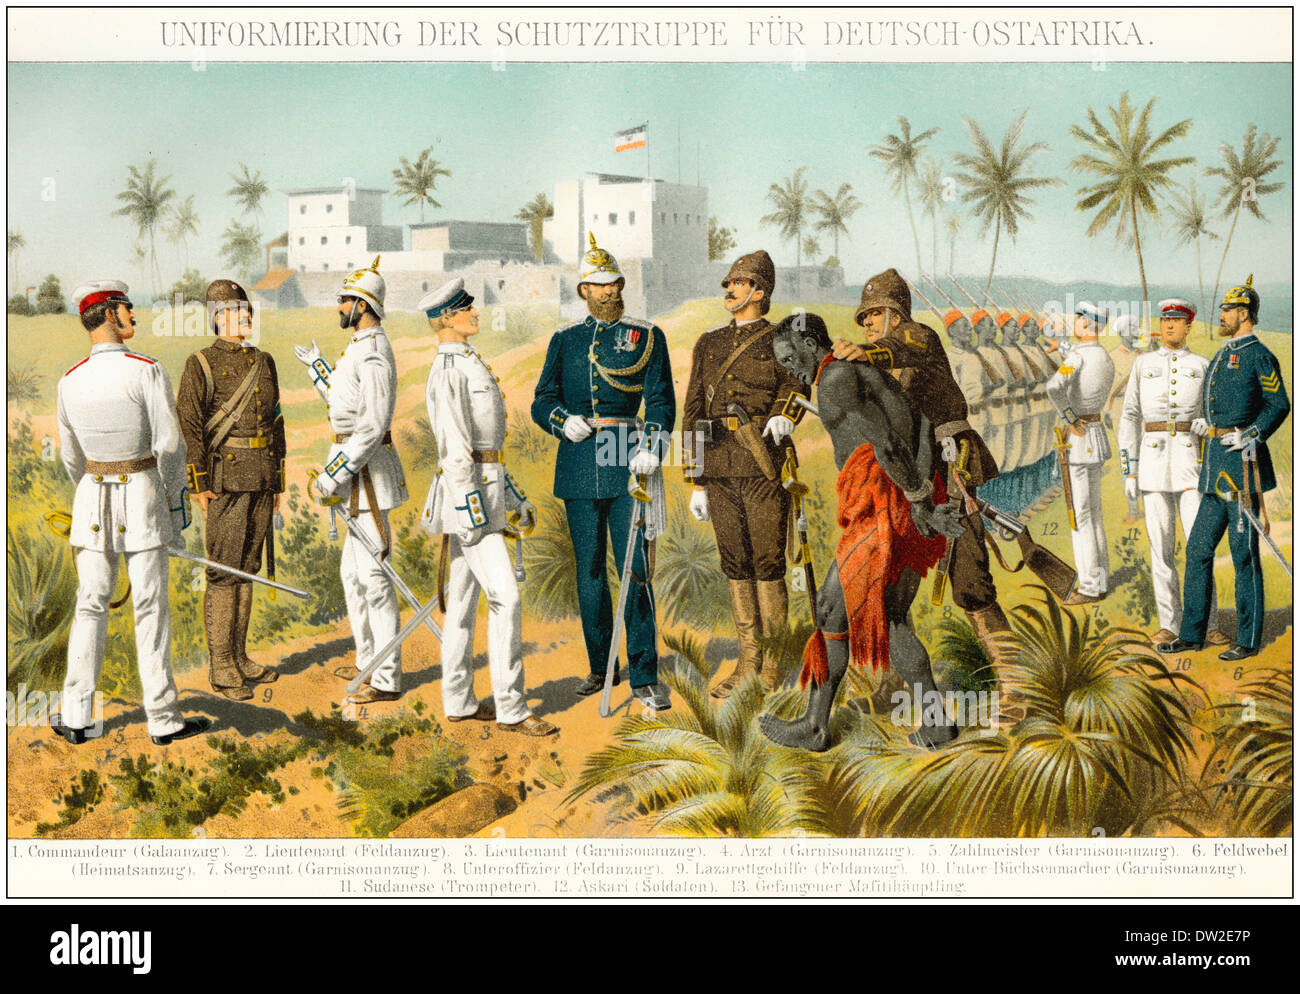 Historical illustration, 1894, uniforms of Imperial German colonial soldiers in East Africa - Stock Image